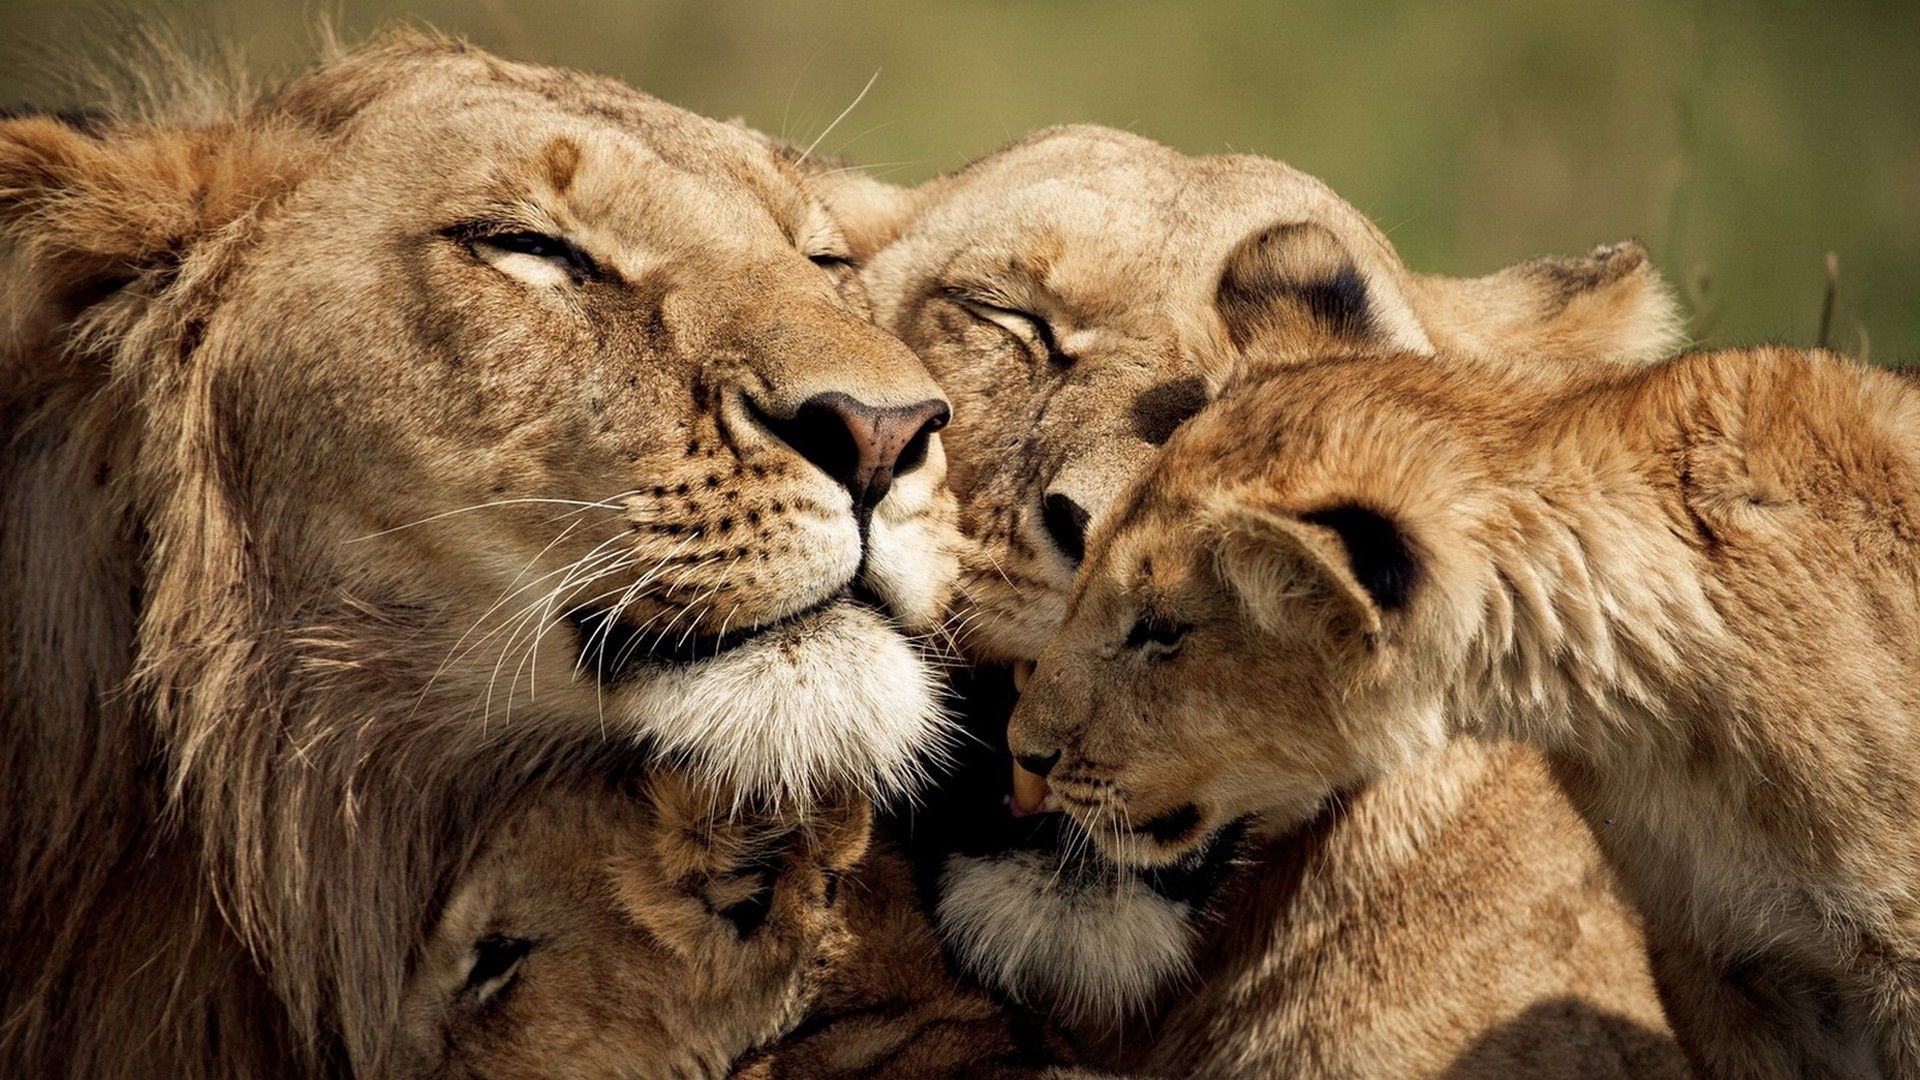 102935 download wallpaper Animals, Young, Joey, Care, Tenderness, Cute, Lions screensavers and pictures for free